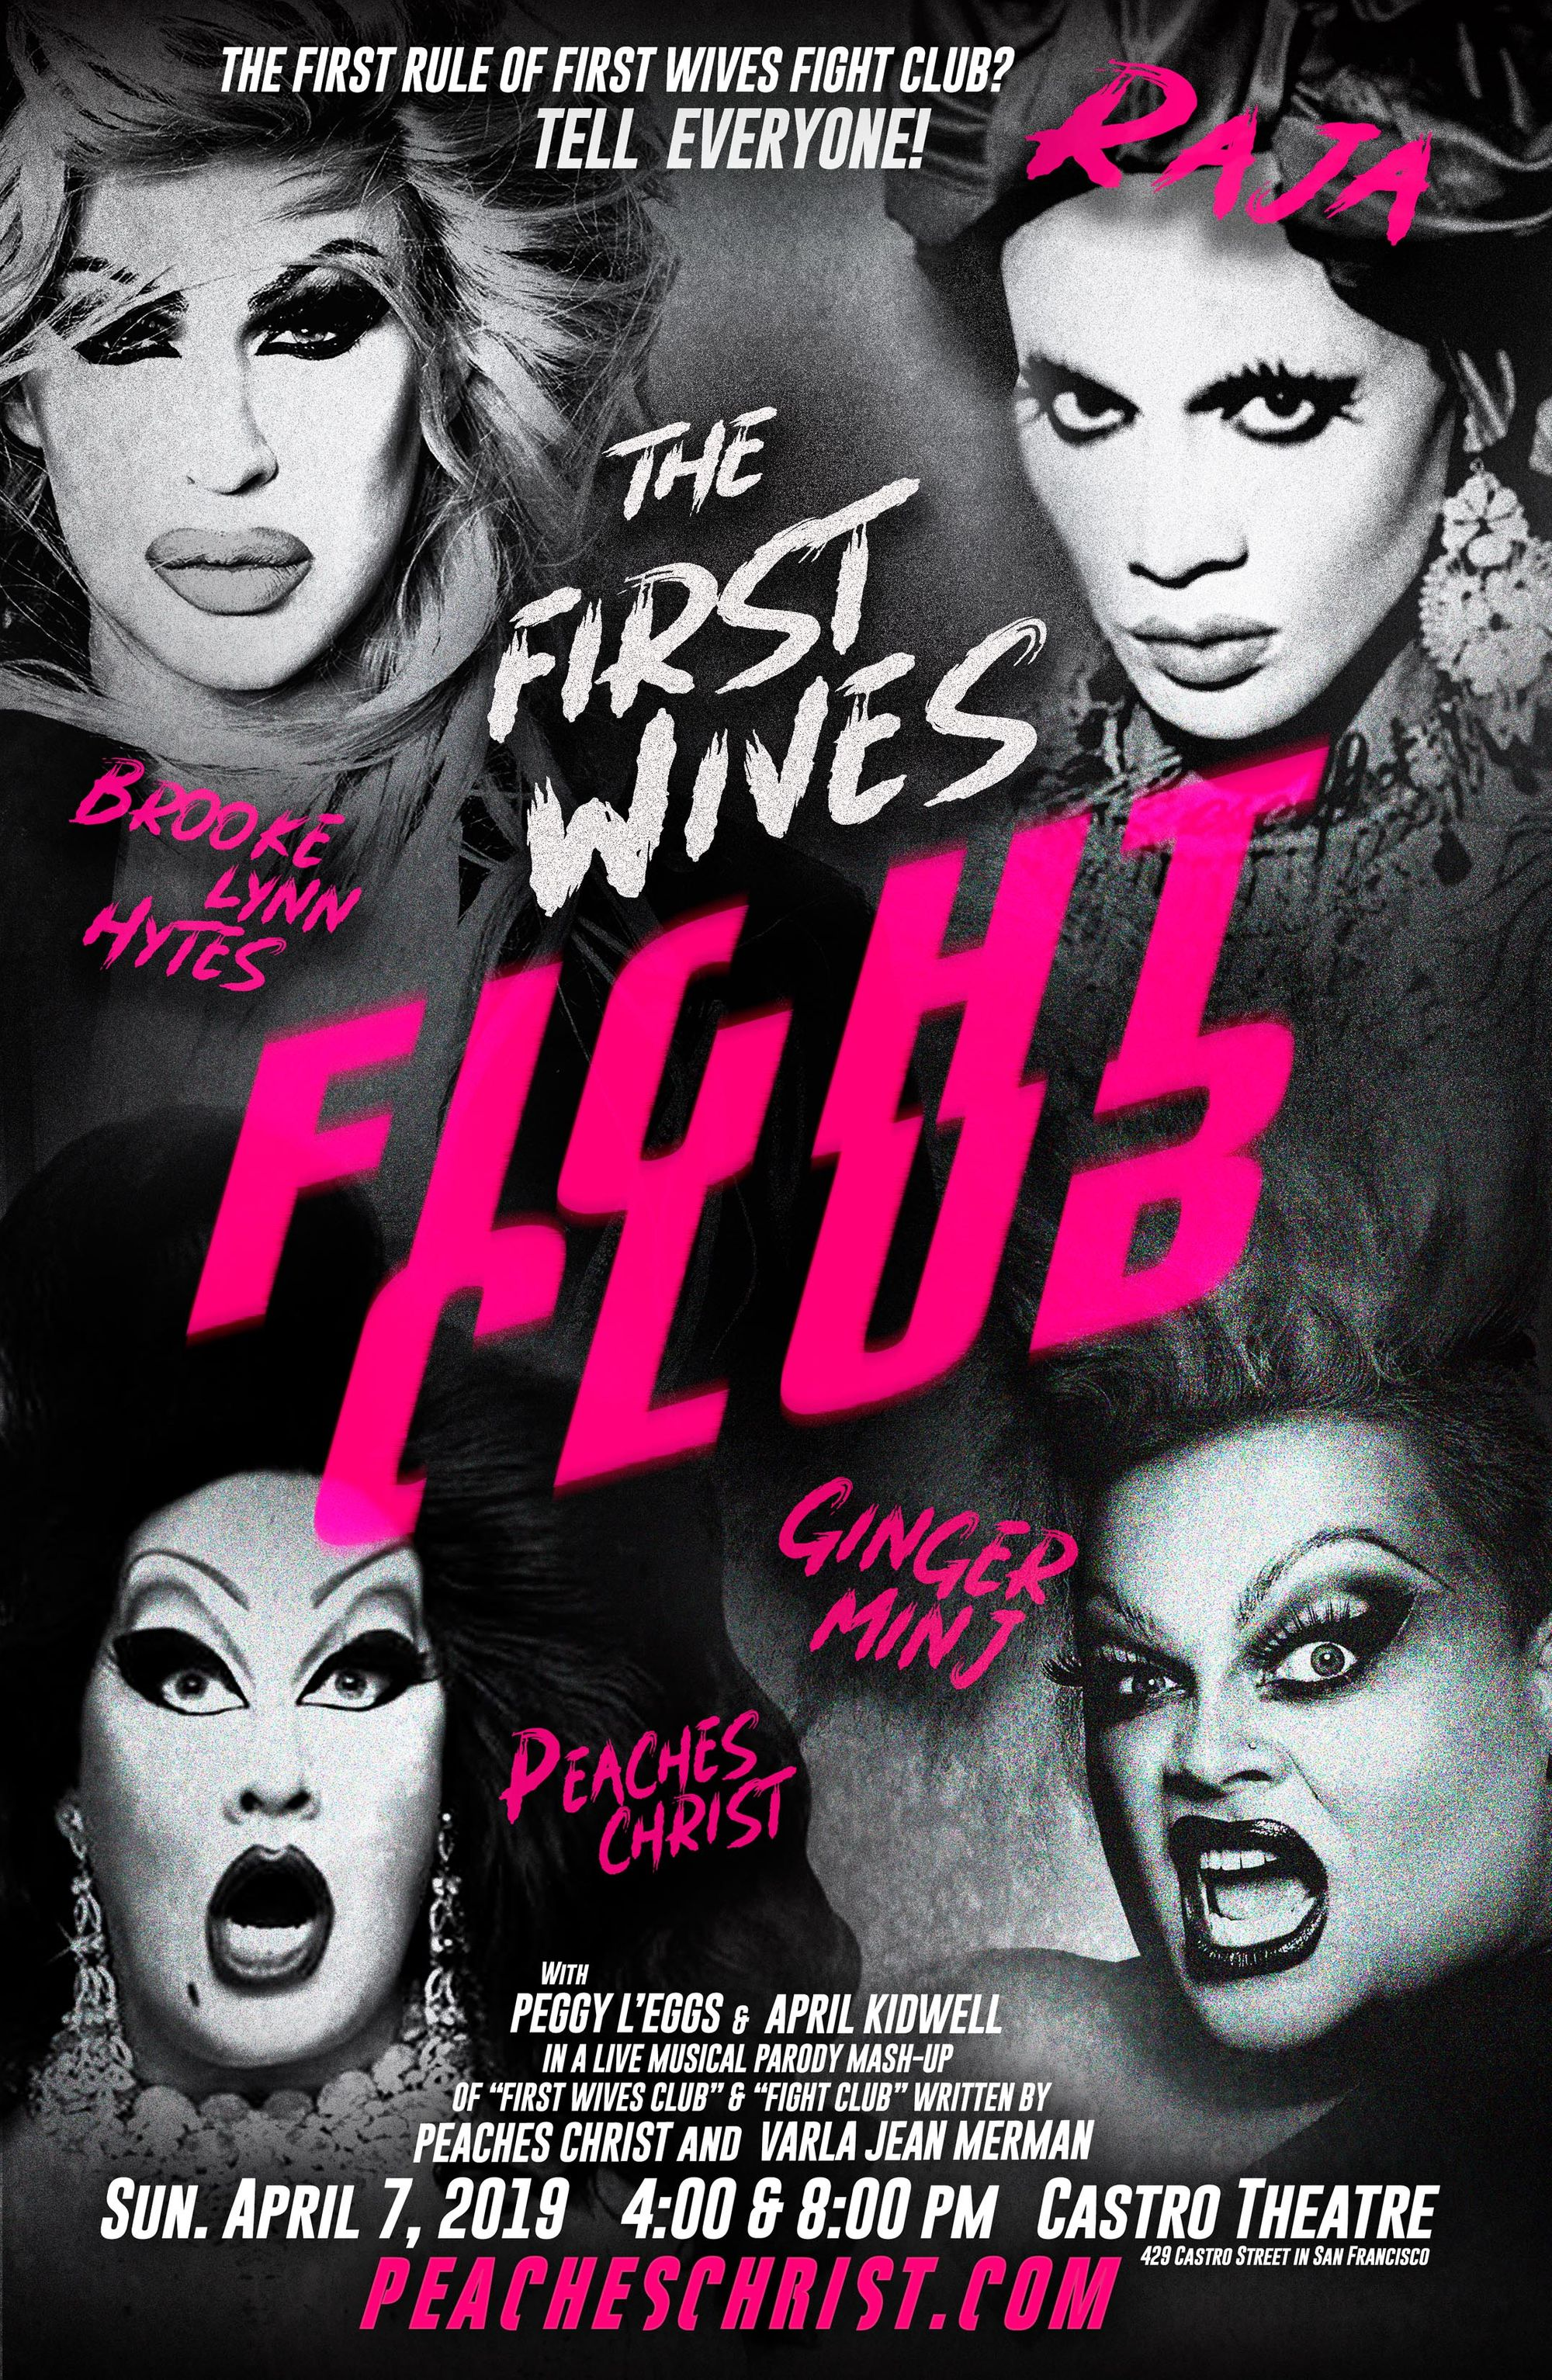 Drag Legend Peaches Christ To Present 'First Wives Fight Club' April 7 Starring Ginger Minj, Raja, and Brooke Lynn Hytes